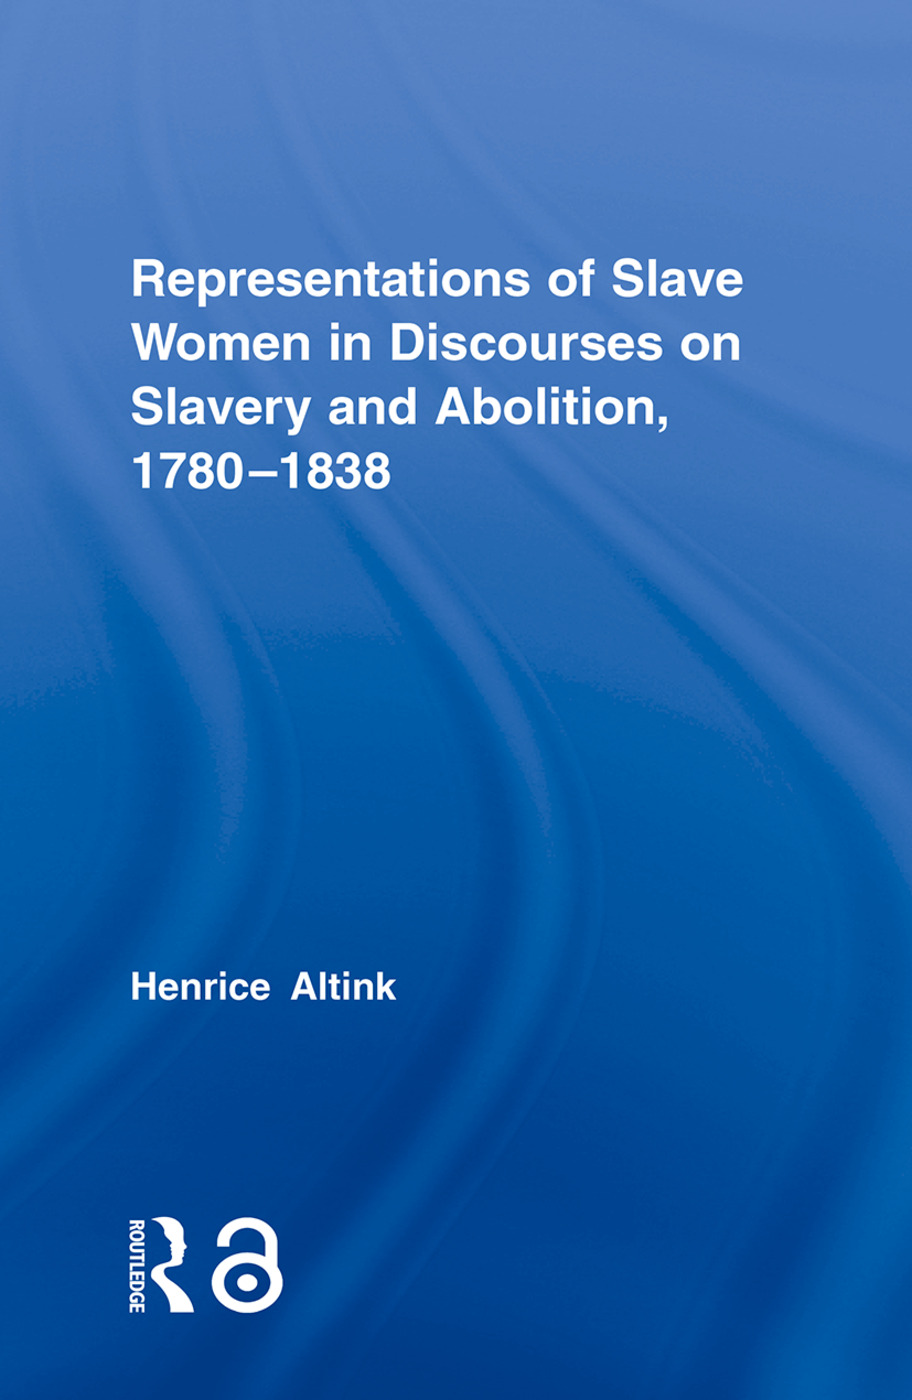 Representations of Slave Women in Discourses on Slavery and Abolition, 1780–1838